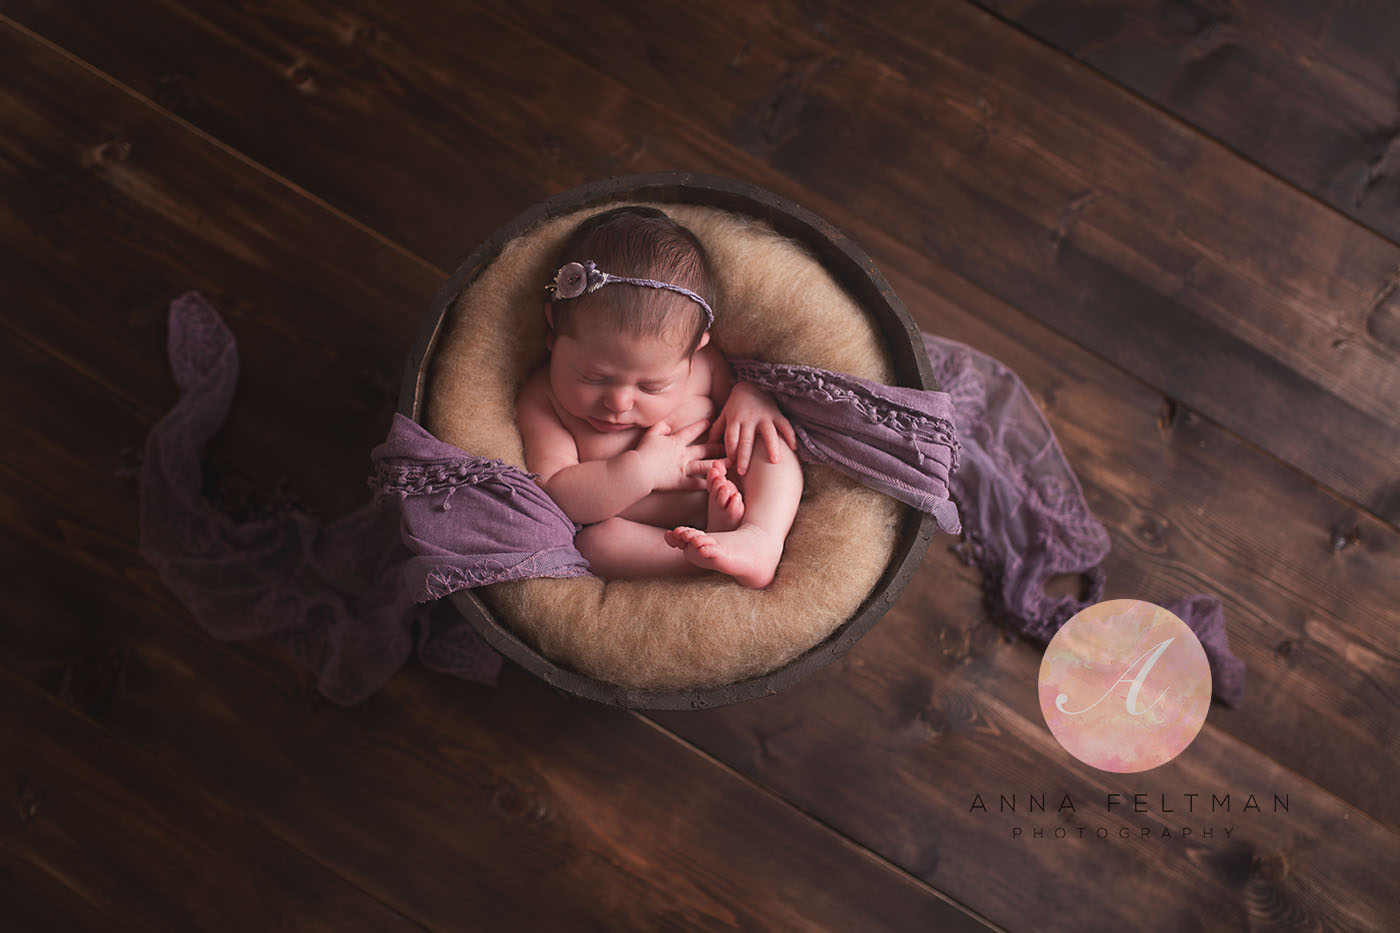 Anna Feltman Photography Newborn Photographer.jpg